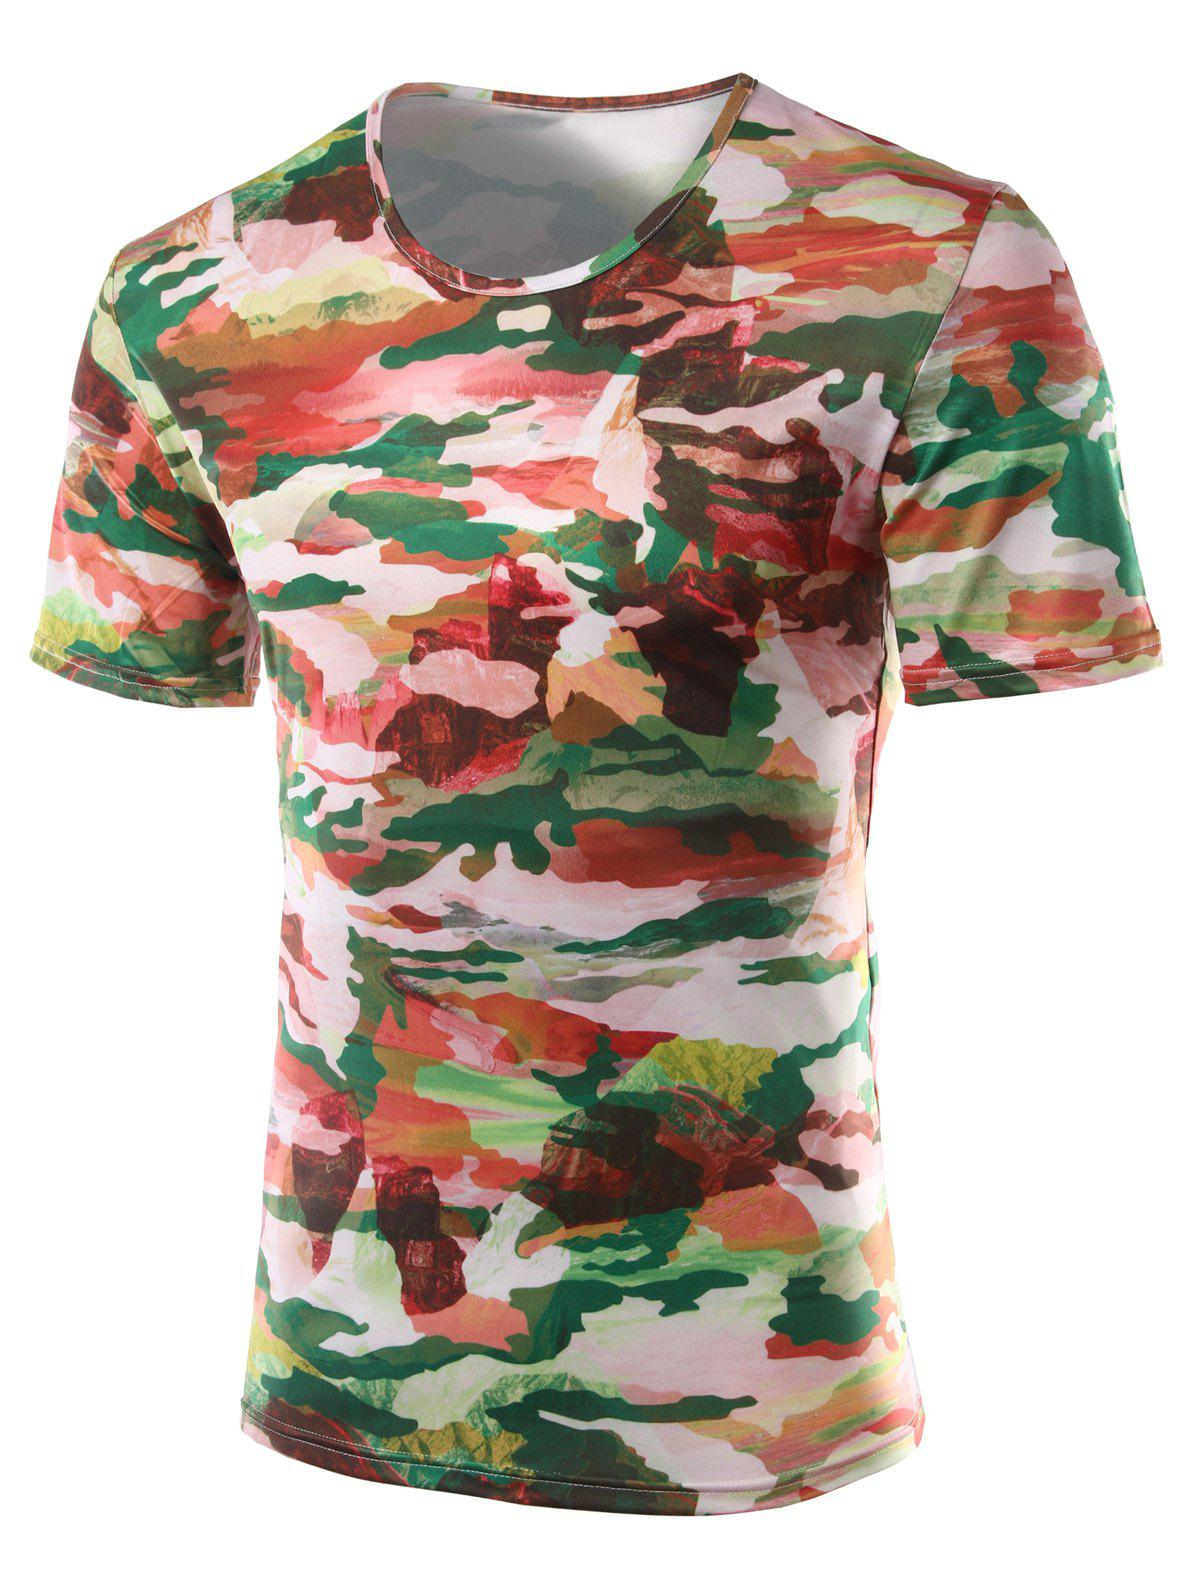 Slim Fit Printed Round Collar Short Sleeves T-Shirts For Men